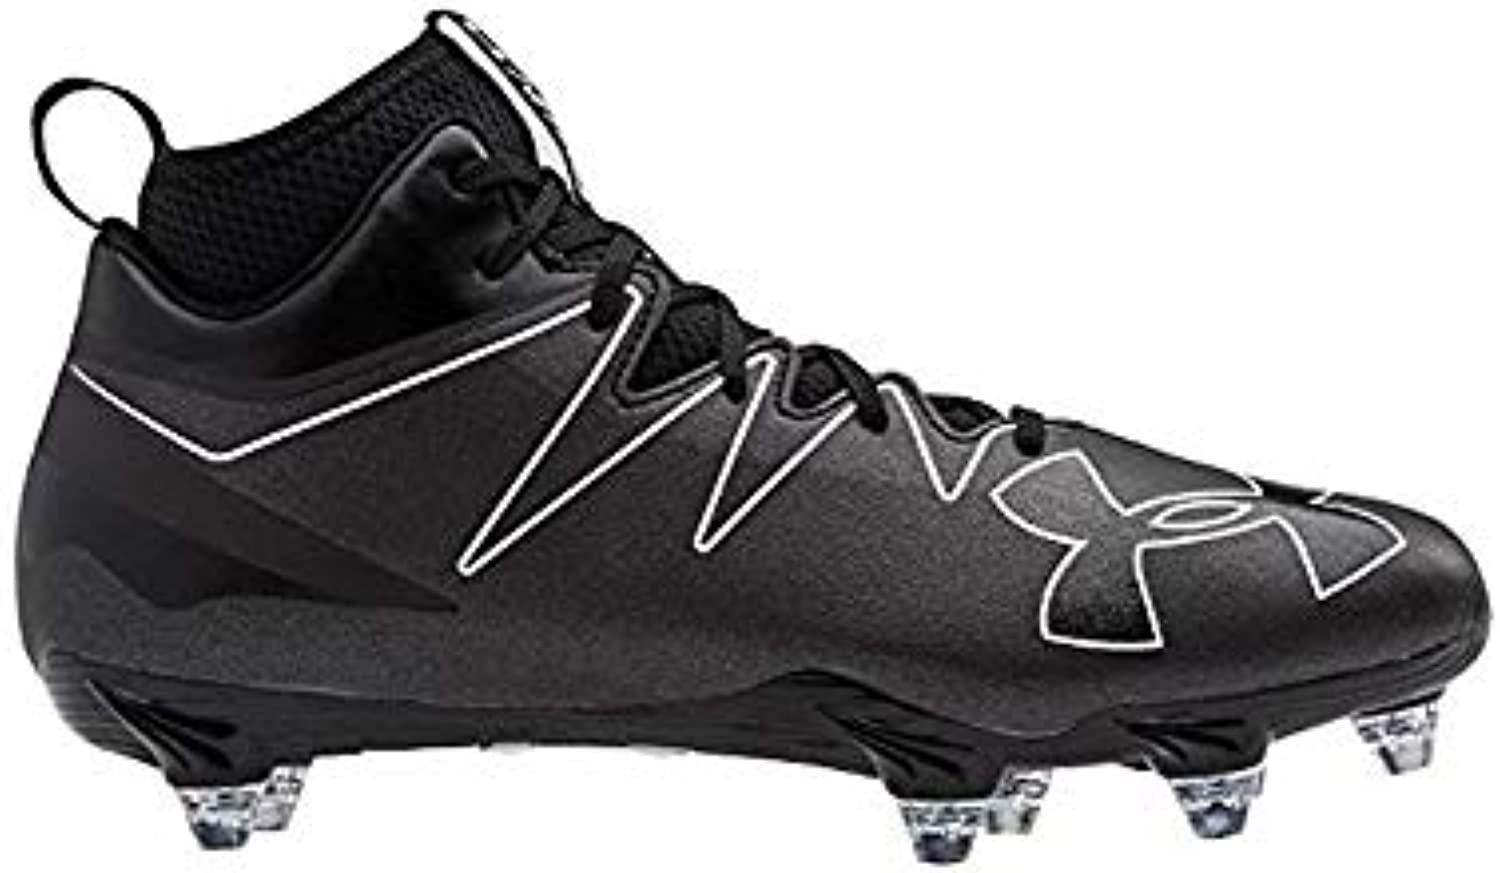 Adidas Freak High High High Wide (2E) Cleat Mens Football 12 nero-nero-nero | Elegante e divertente